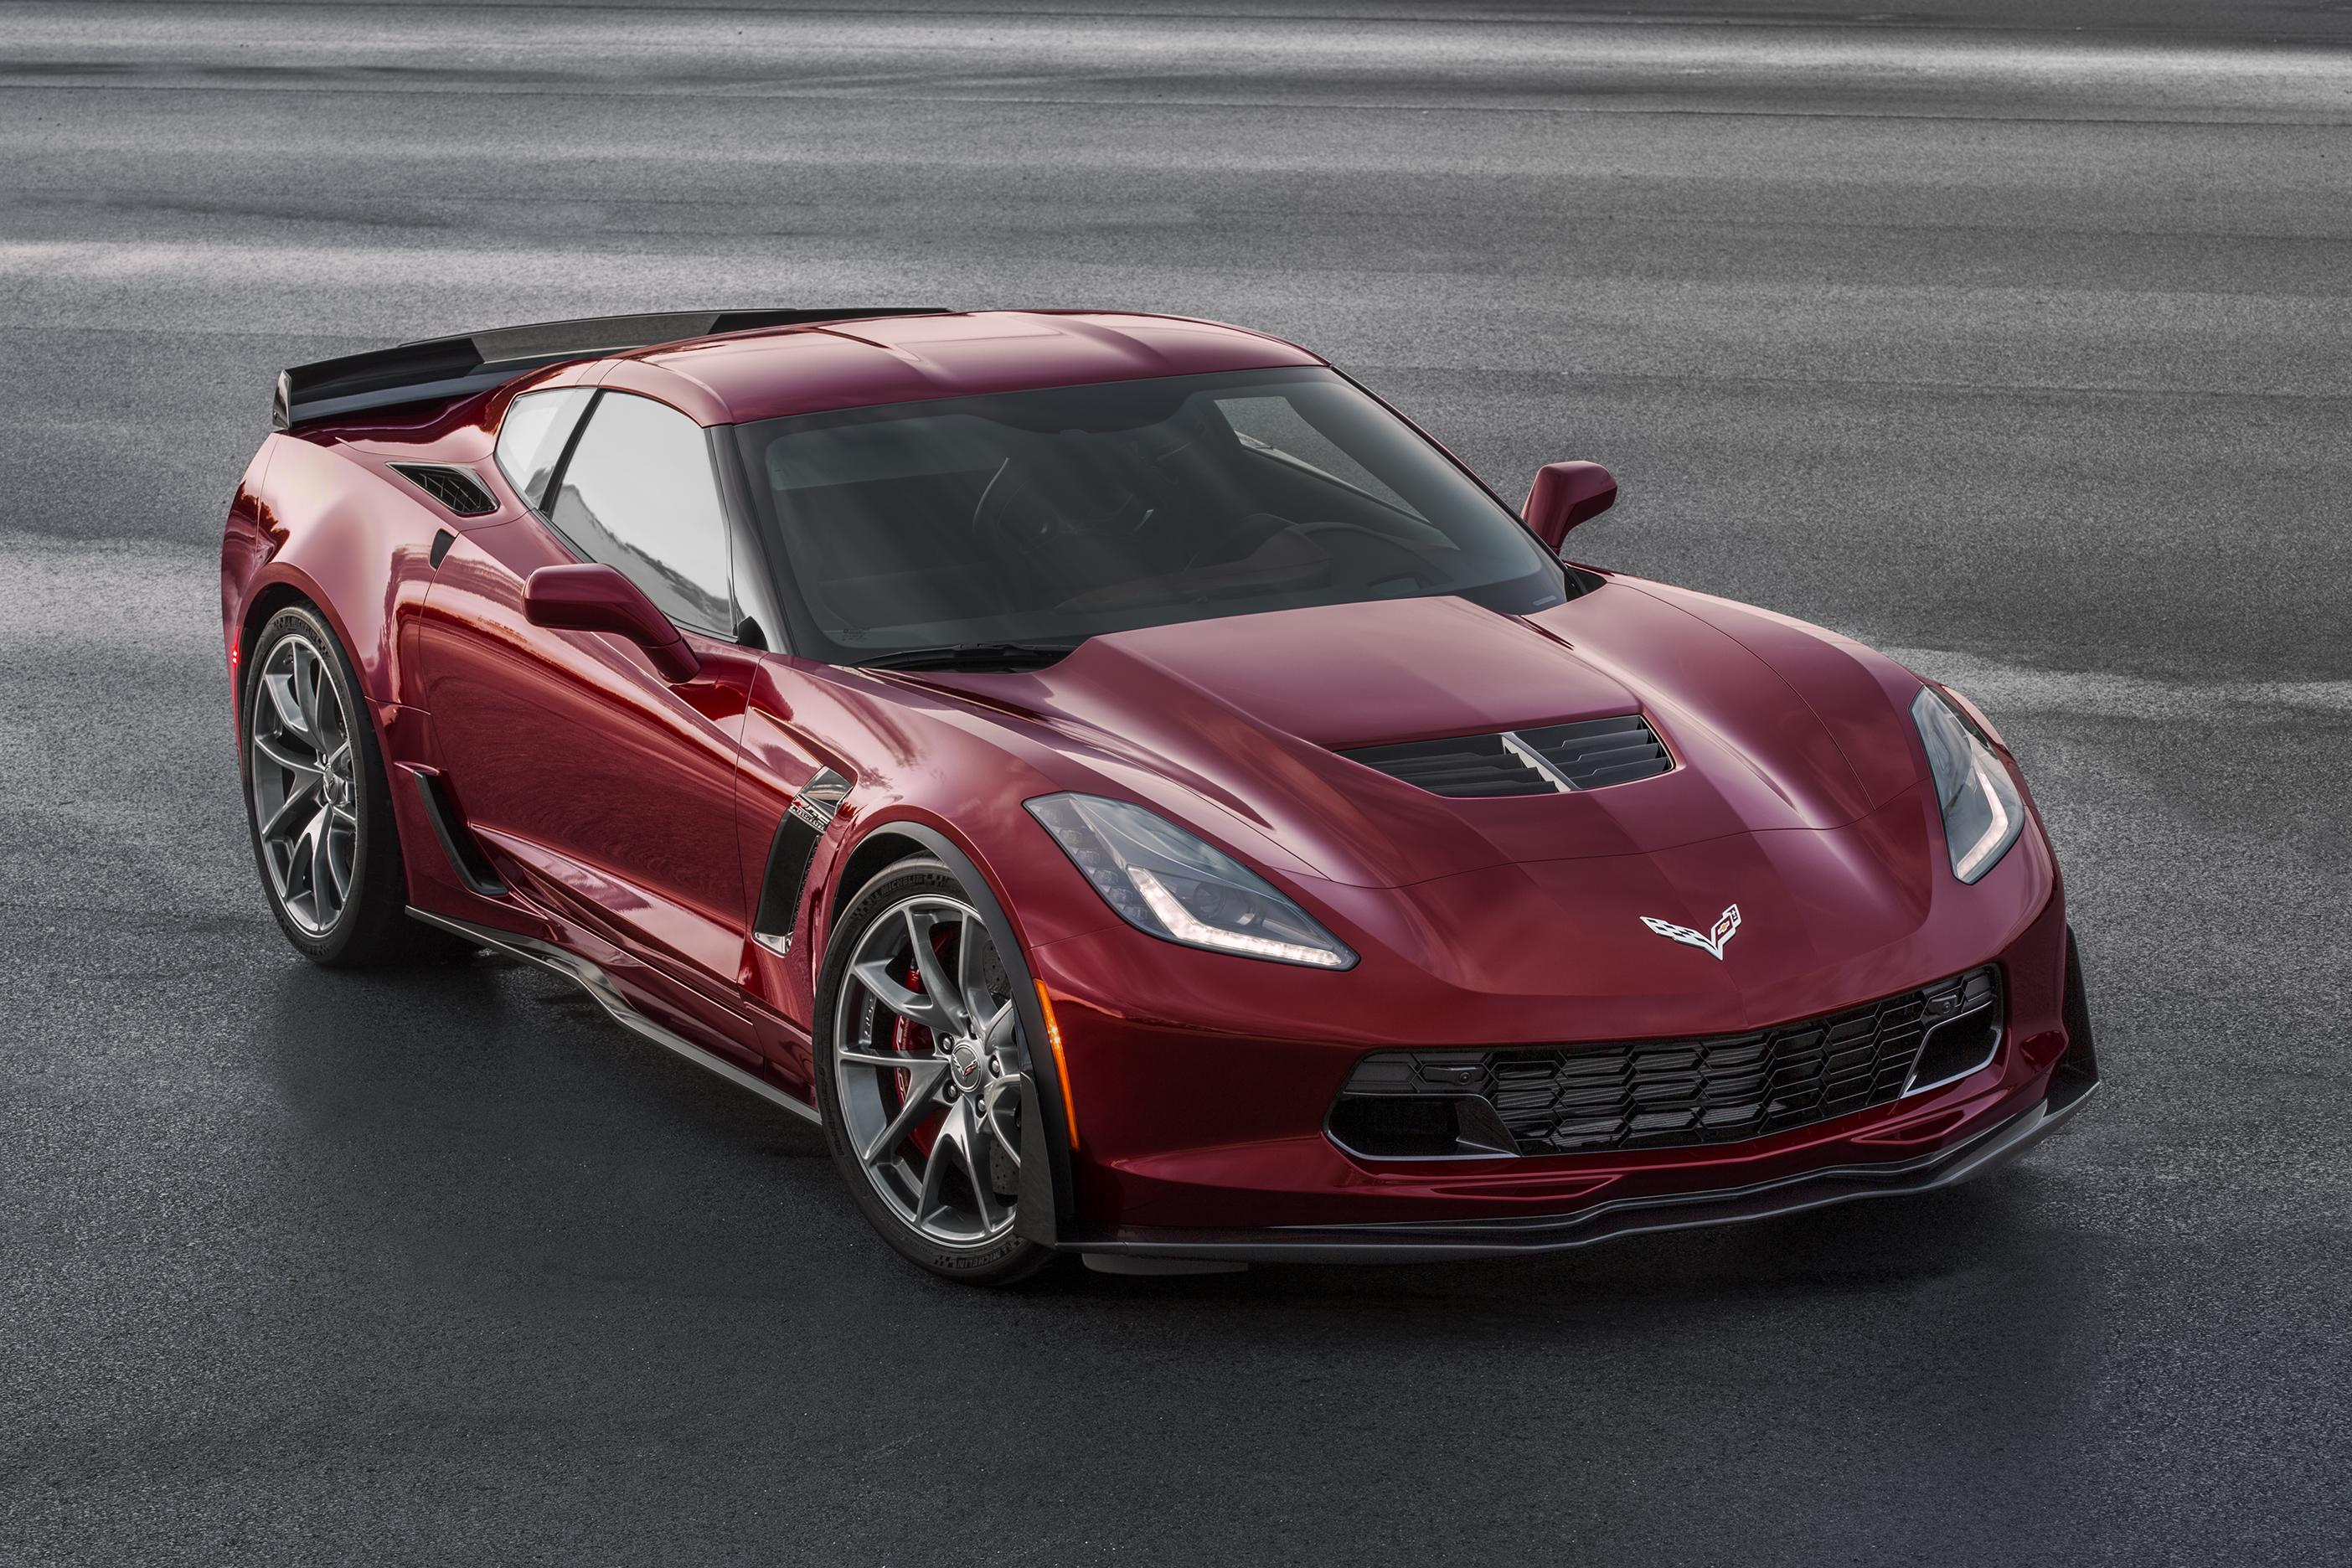 Corvette Sales Are Down Yet Prices Are Going Up! | News ...